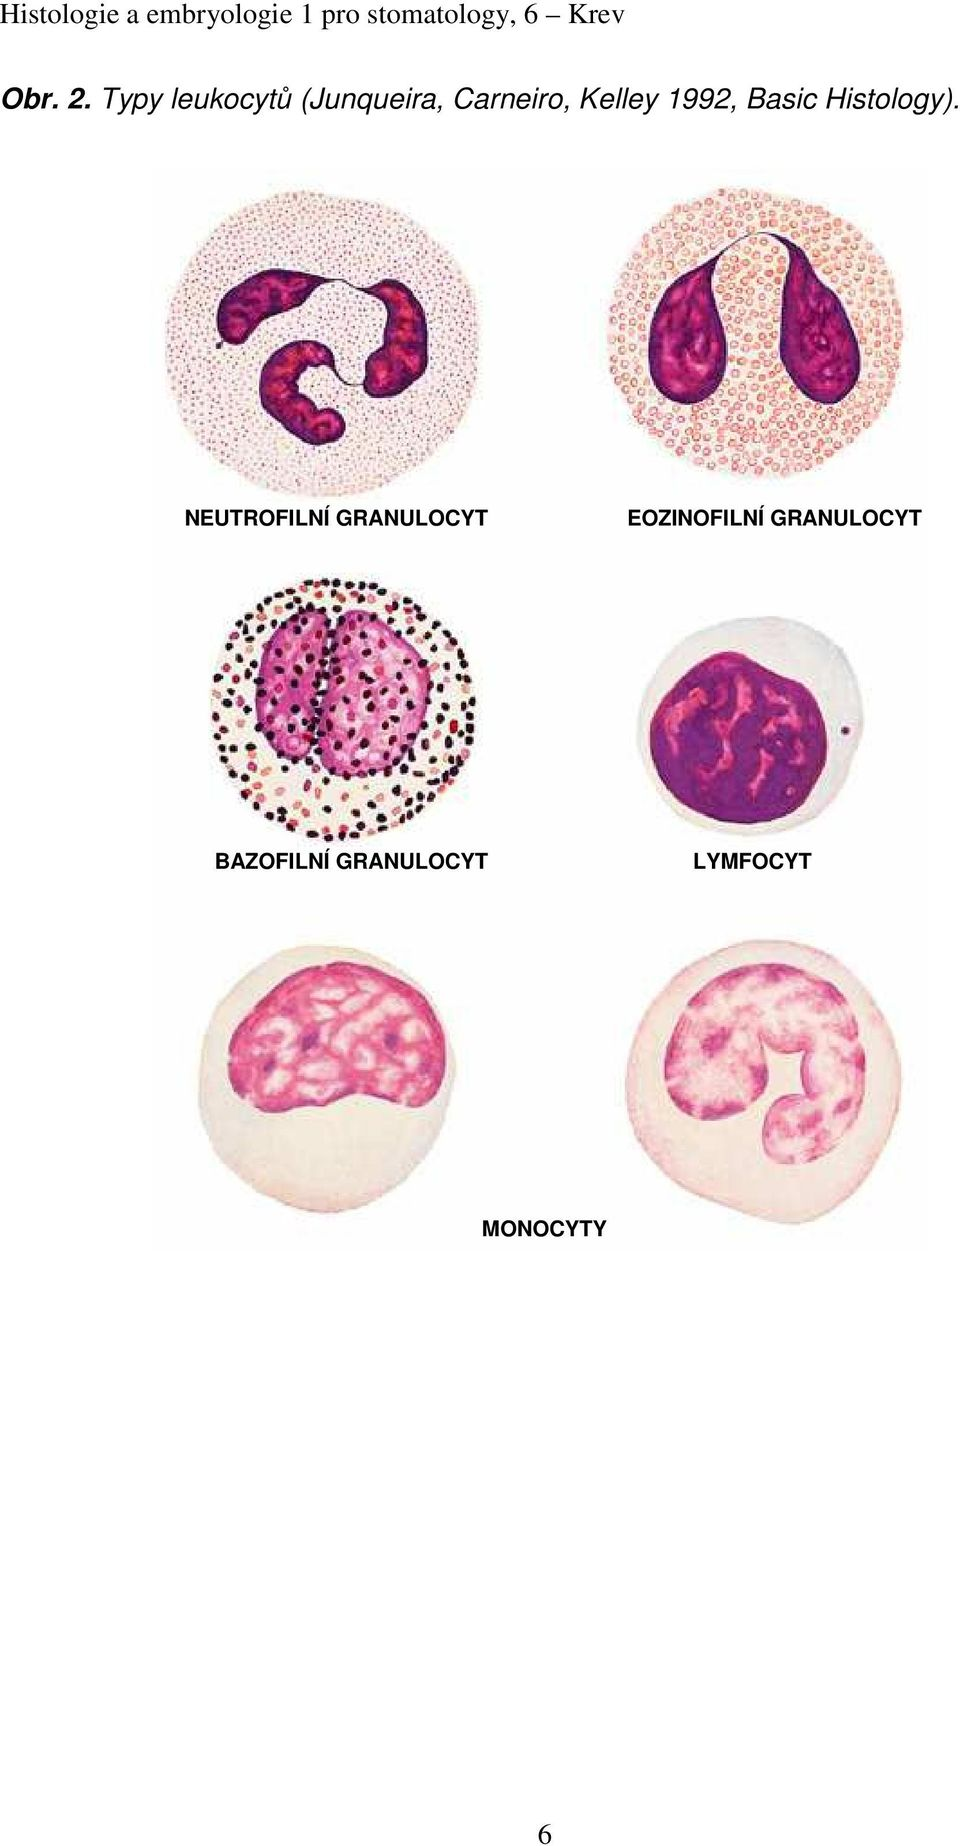 Kelley 1992, Basic Histology).